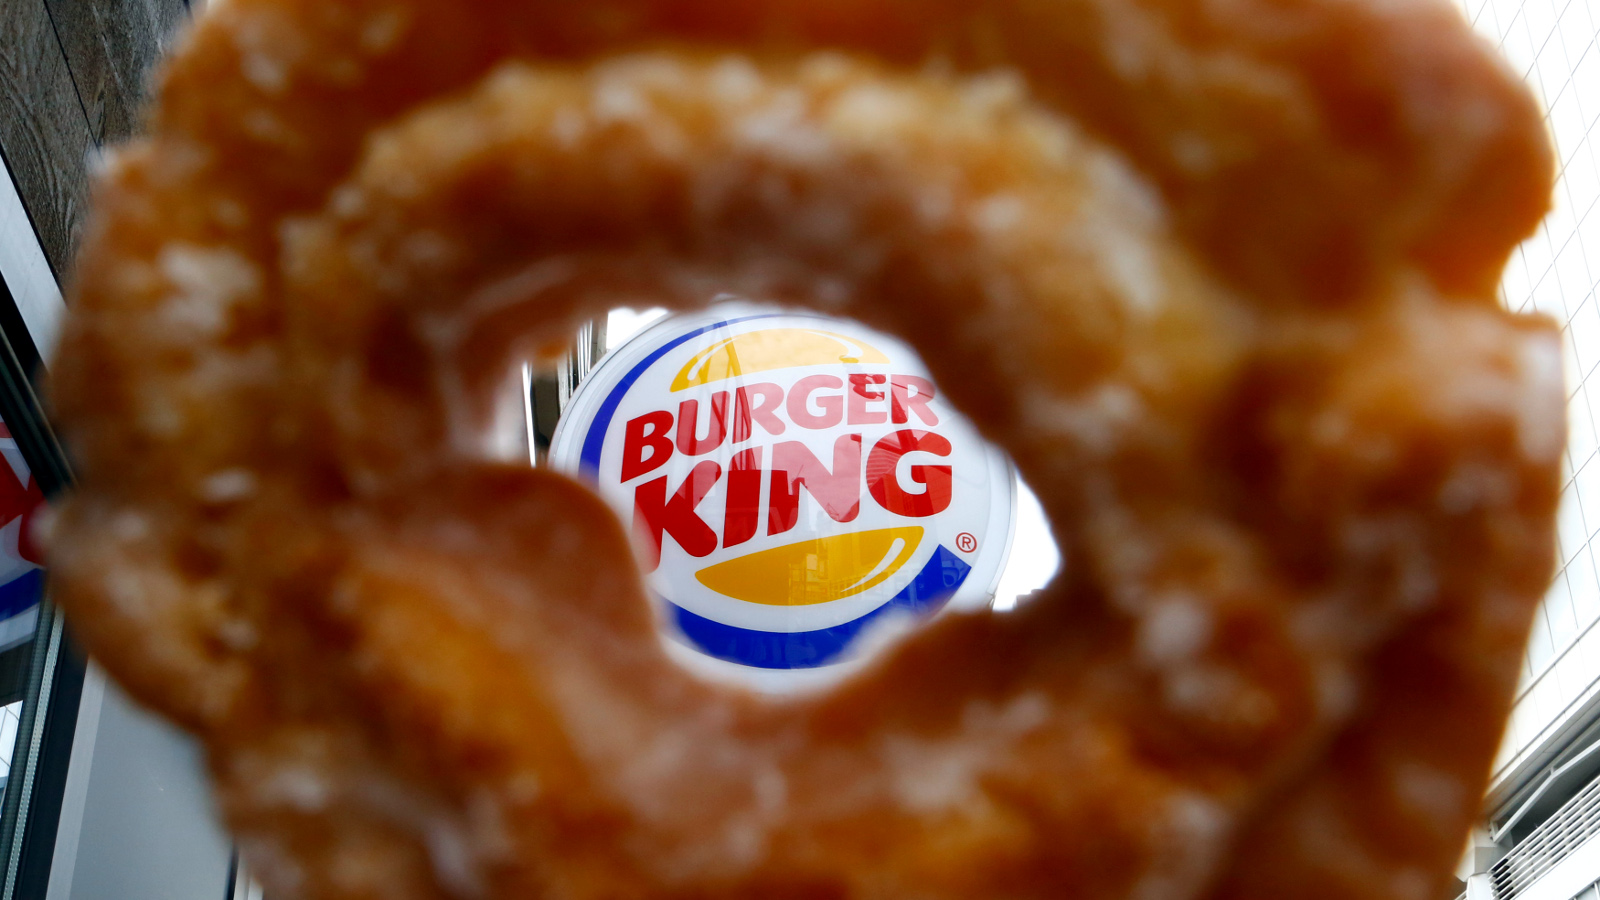 The Burger King logo is seen through a Tim Horton's doughnut hole in a photo illustration outside a restaurant in Toronto August 29, 2014. Burger King's proposed $11.5 billion acquisition of Canada's Tim Hortons may offer big tax benefits to the U.S. fast food chain but the real tax winner is likely to be its controlling shareholder, 3G Capital. The New York investment firm is not only deferring a capital gains tax hit in the U.S. because of the deal structure, but is also poised to reap a multitude of dividend tax and other benefits by moving Burger King's domicile to Canada, tax experts on both sides of the border said.